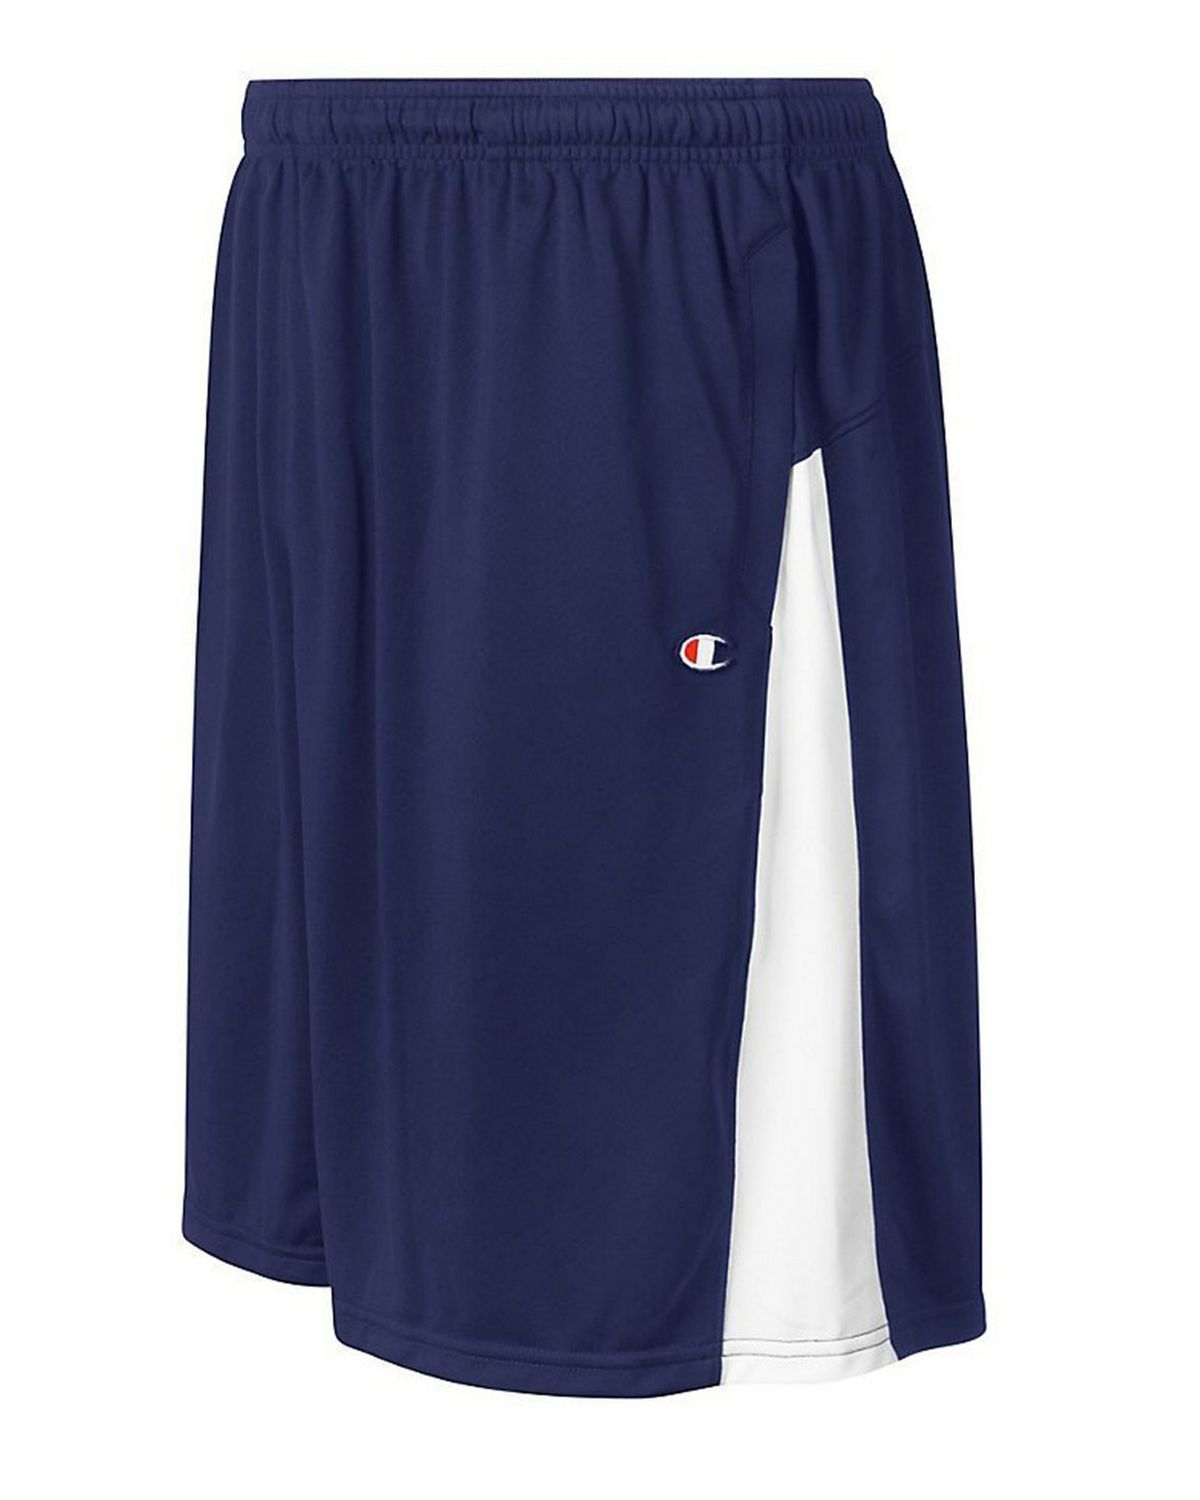 Champion 8508 Mens Double Dry Short - Navy/White - S 8508